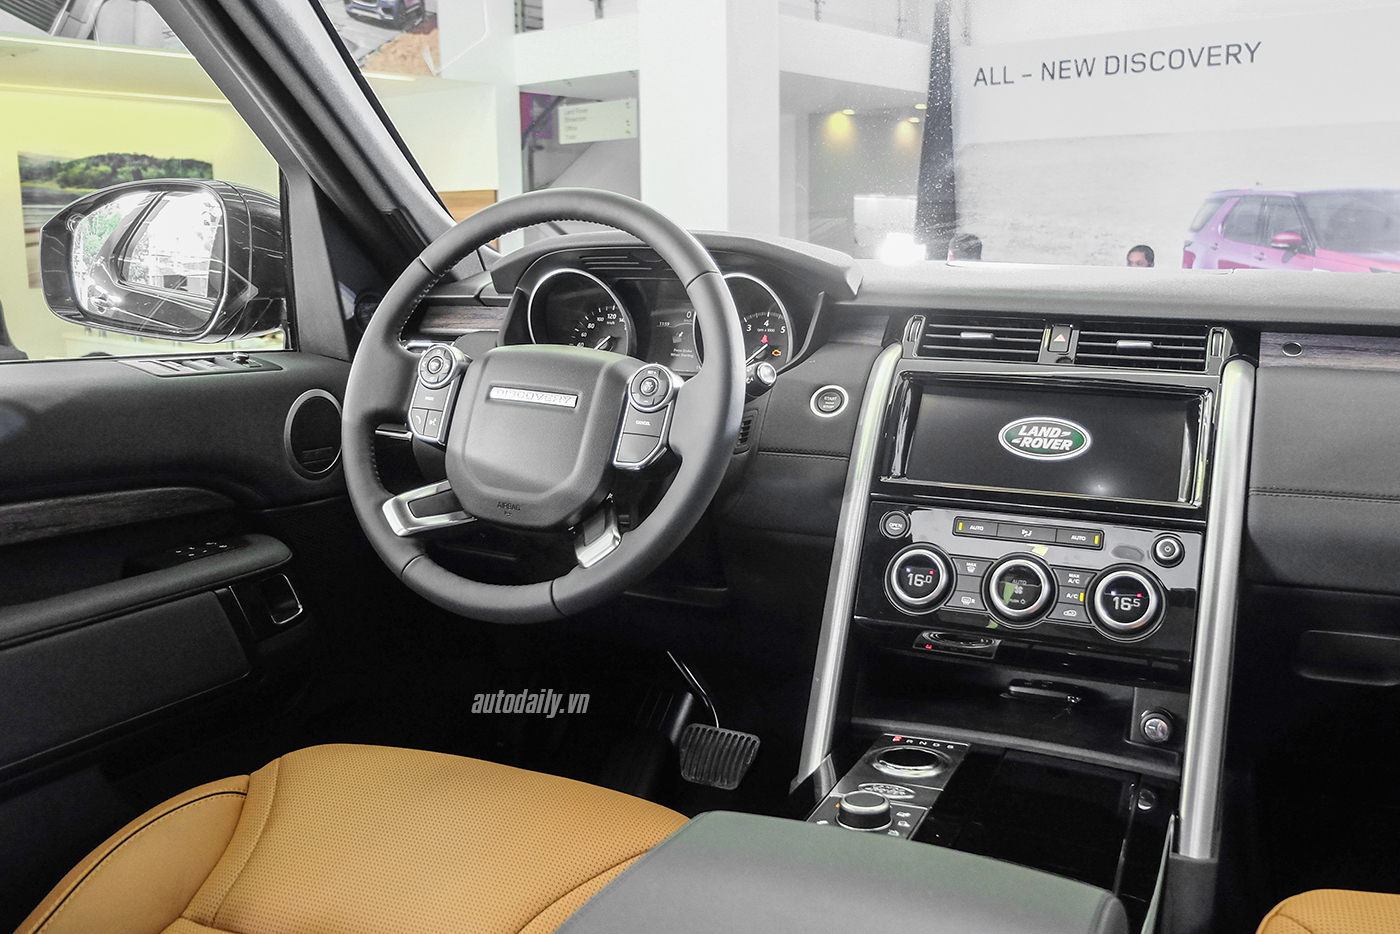 land-rover-discovery-6.jpg